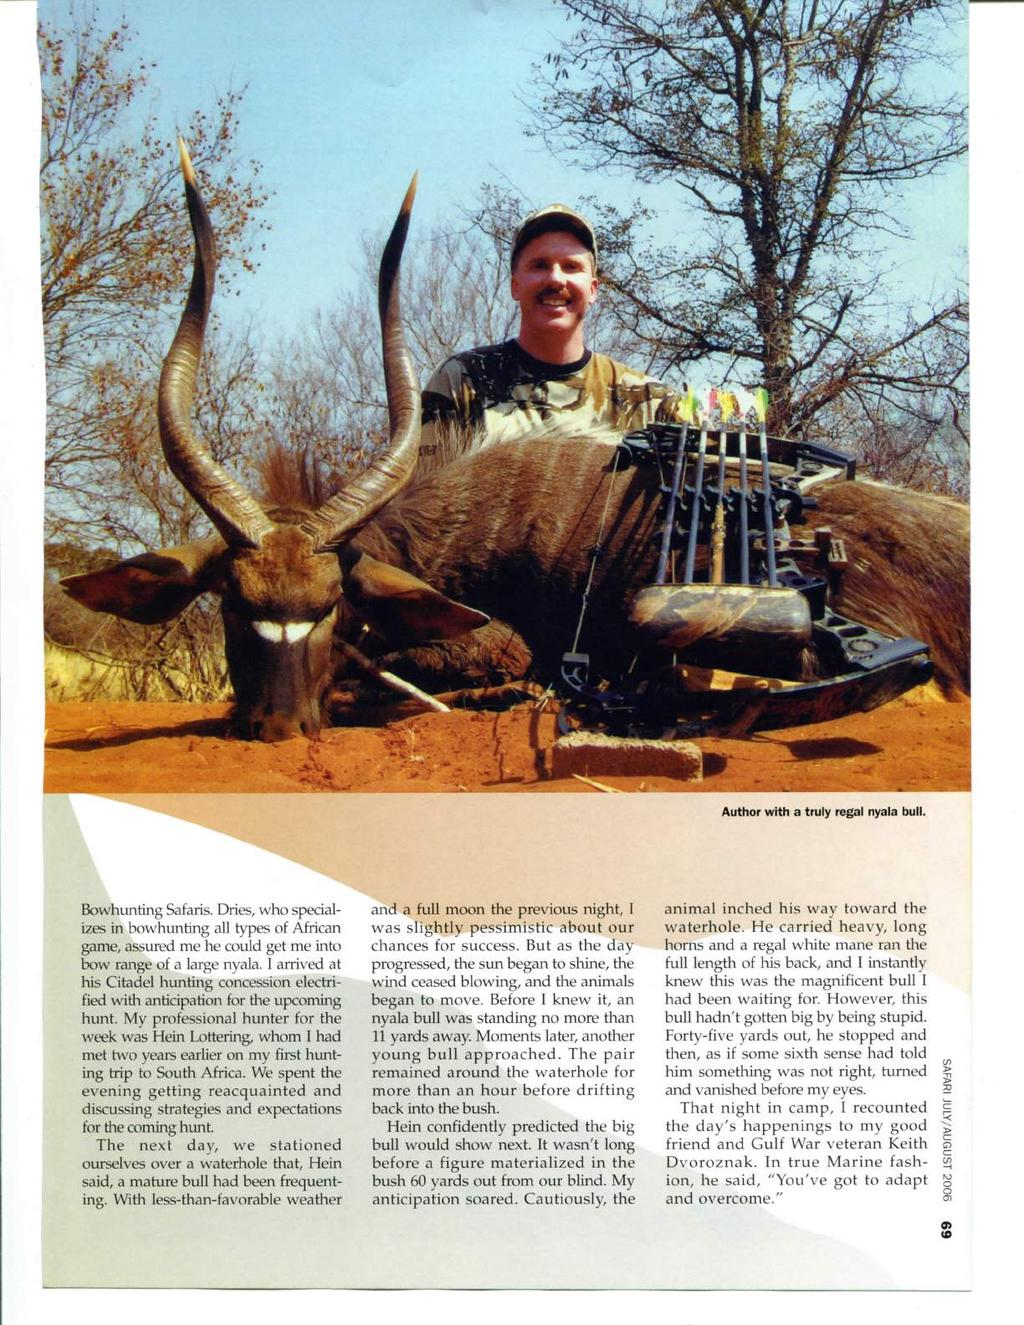 Author with a truly regal nyala bull. Bowhunting Safaris. Dries, who specializes in bowhunting all types of African game, assured me he could get me into bow range of a large nyala.